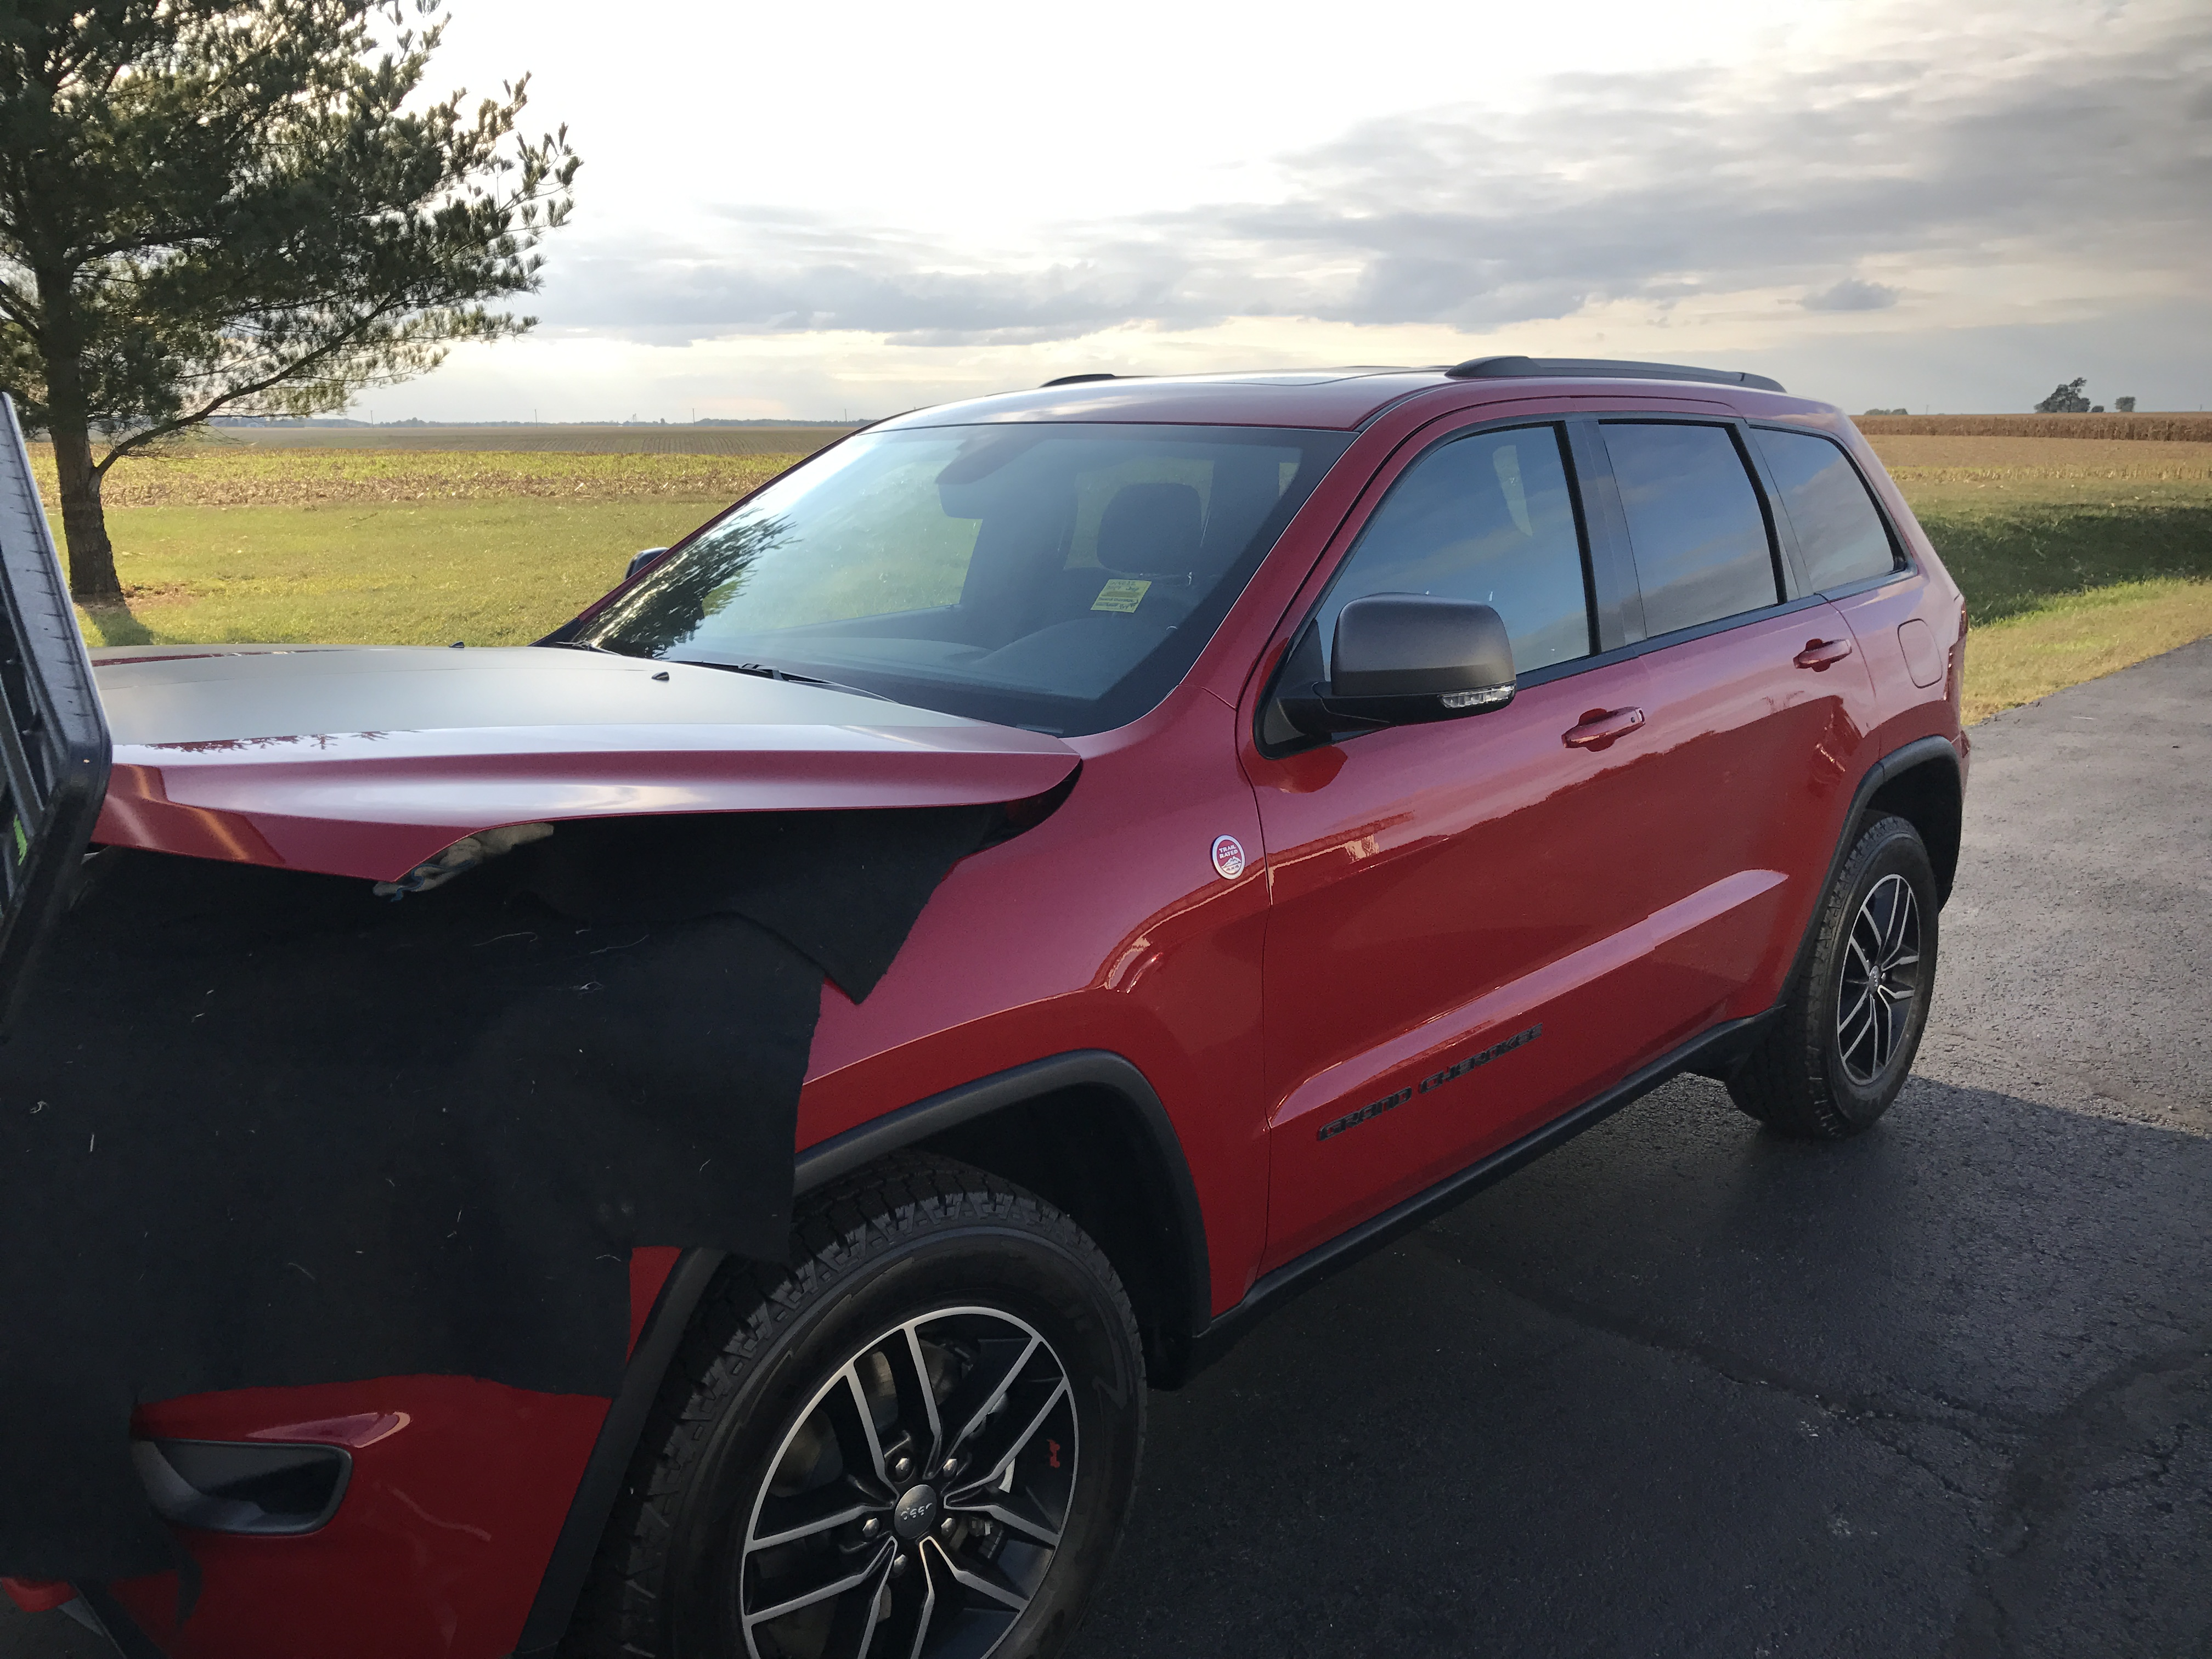 2017 Jeep Grand Cherokee Trailhawk New Vehicel dent removal, this is the before image. Michael was called in to remove this dent at a dealership, to maintain value and to maintain the vehicle's original paint.. http://217dent.com Serving Springfield, Decatur, Taylorville, and surrounding areas. (Set up Image)